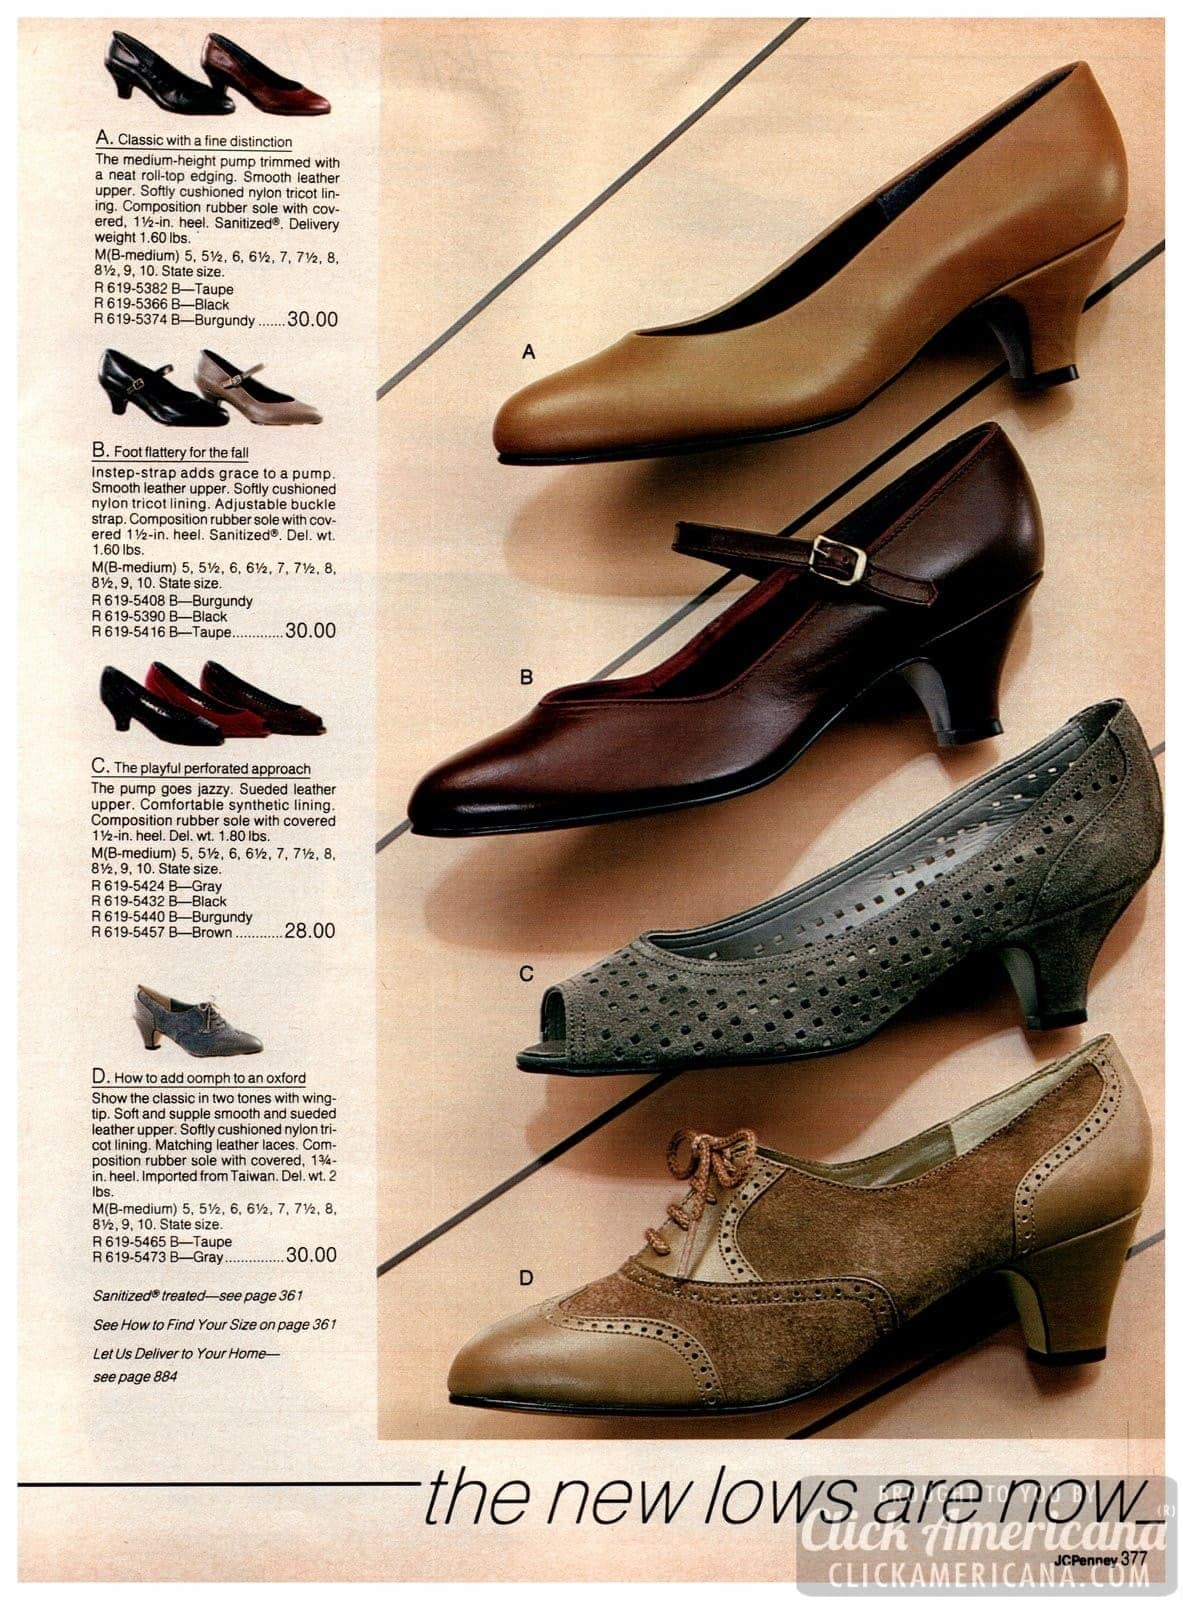 Low-heel shoes from the '80s - pump with sueded leather, wingtips with laces, straps, classic medium-height pumps for ladies